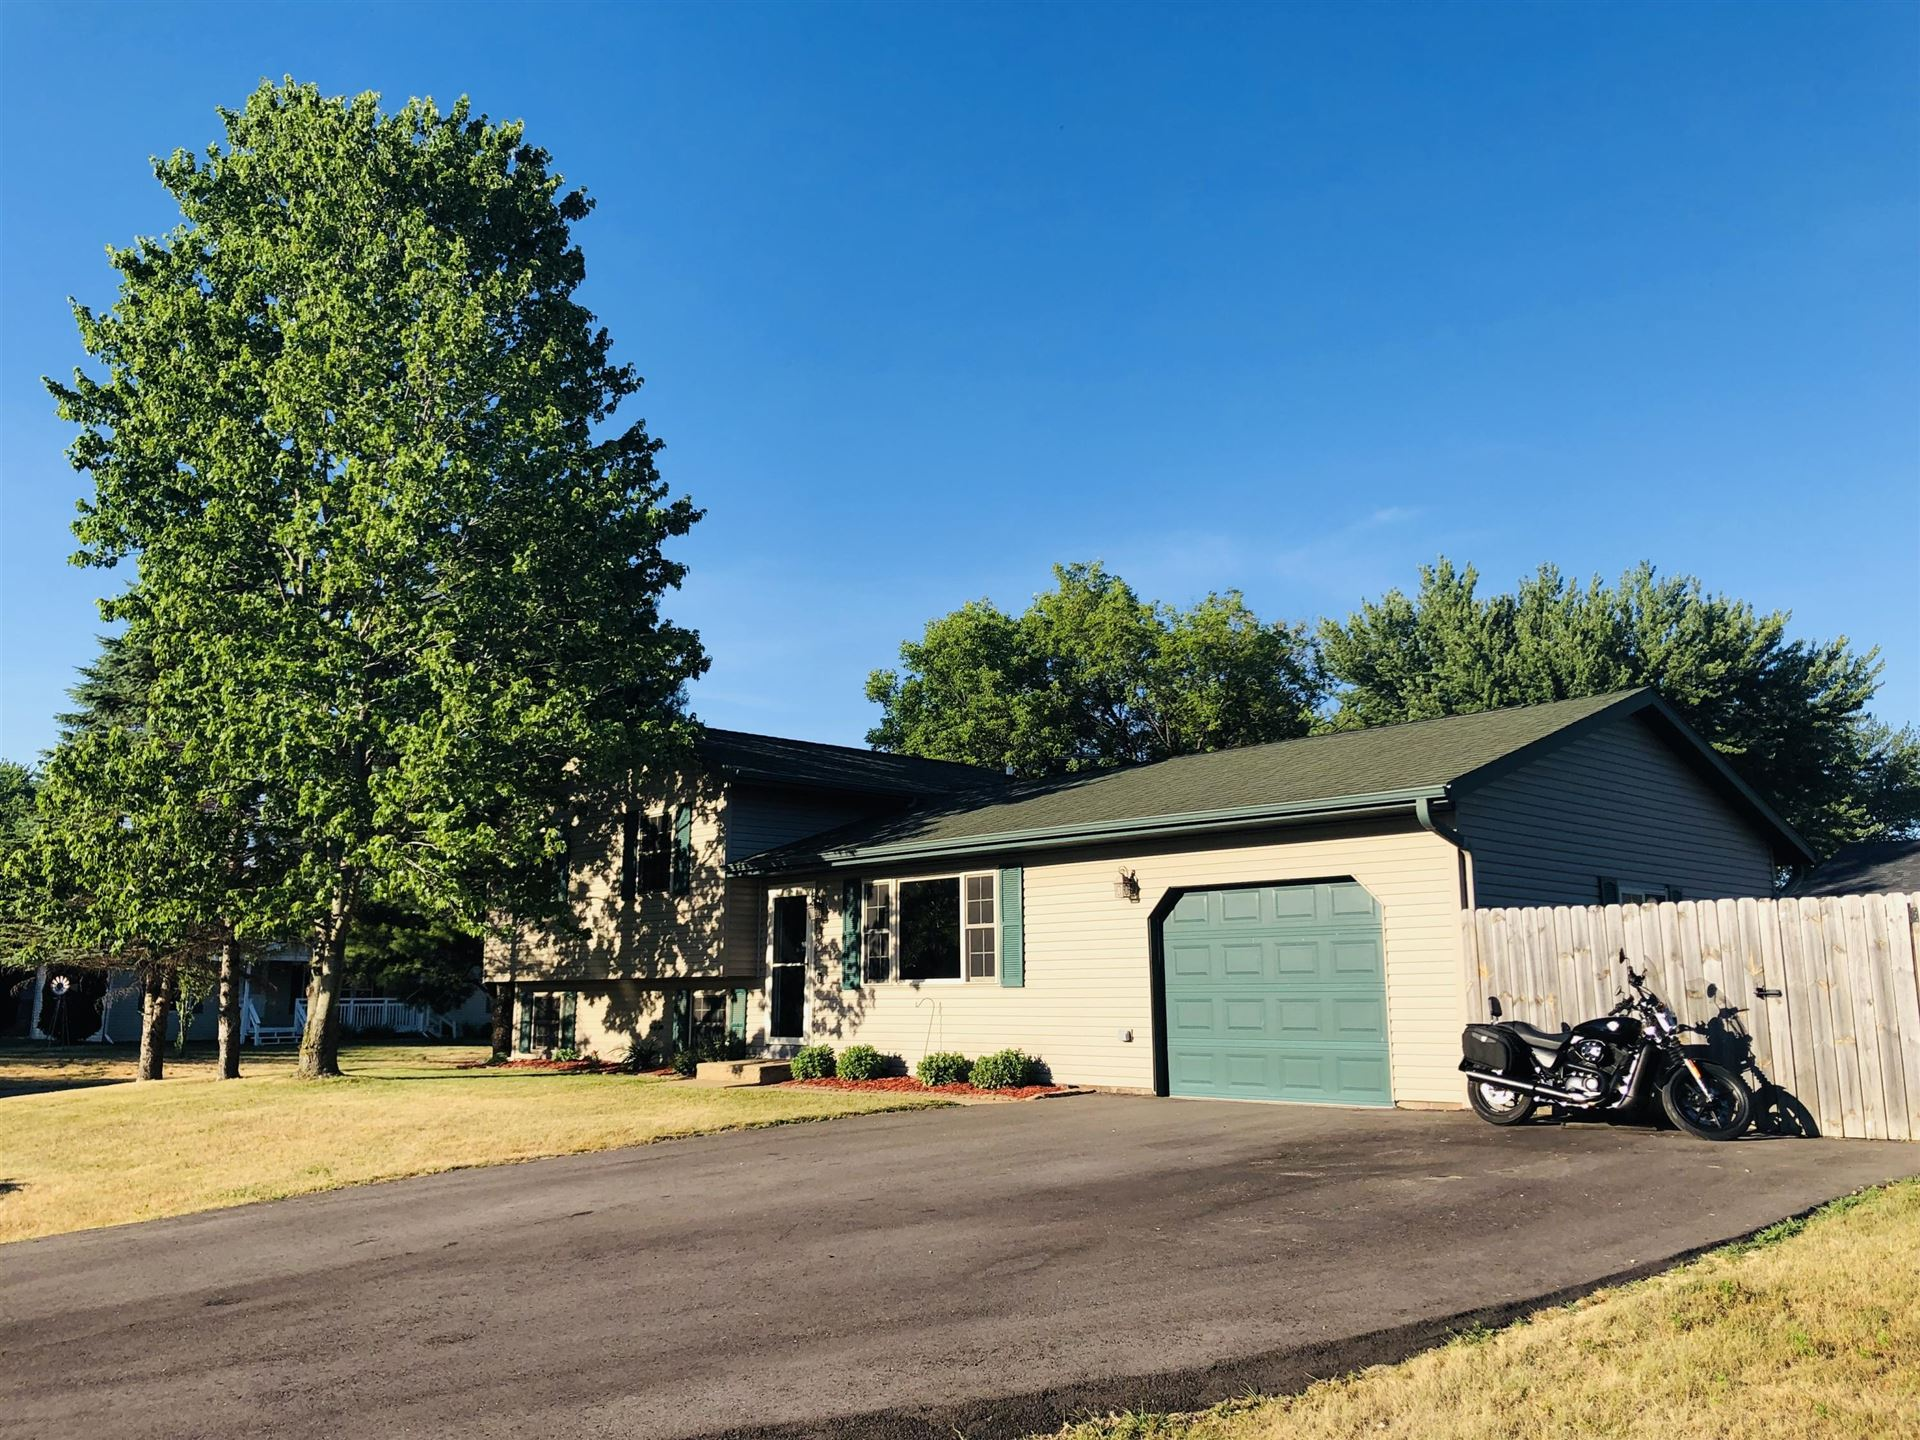 503 Eagle Ave, Rockland, WI 54653 - MLS#: 1746931